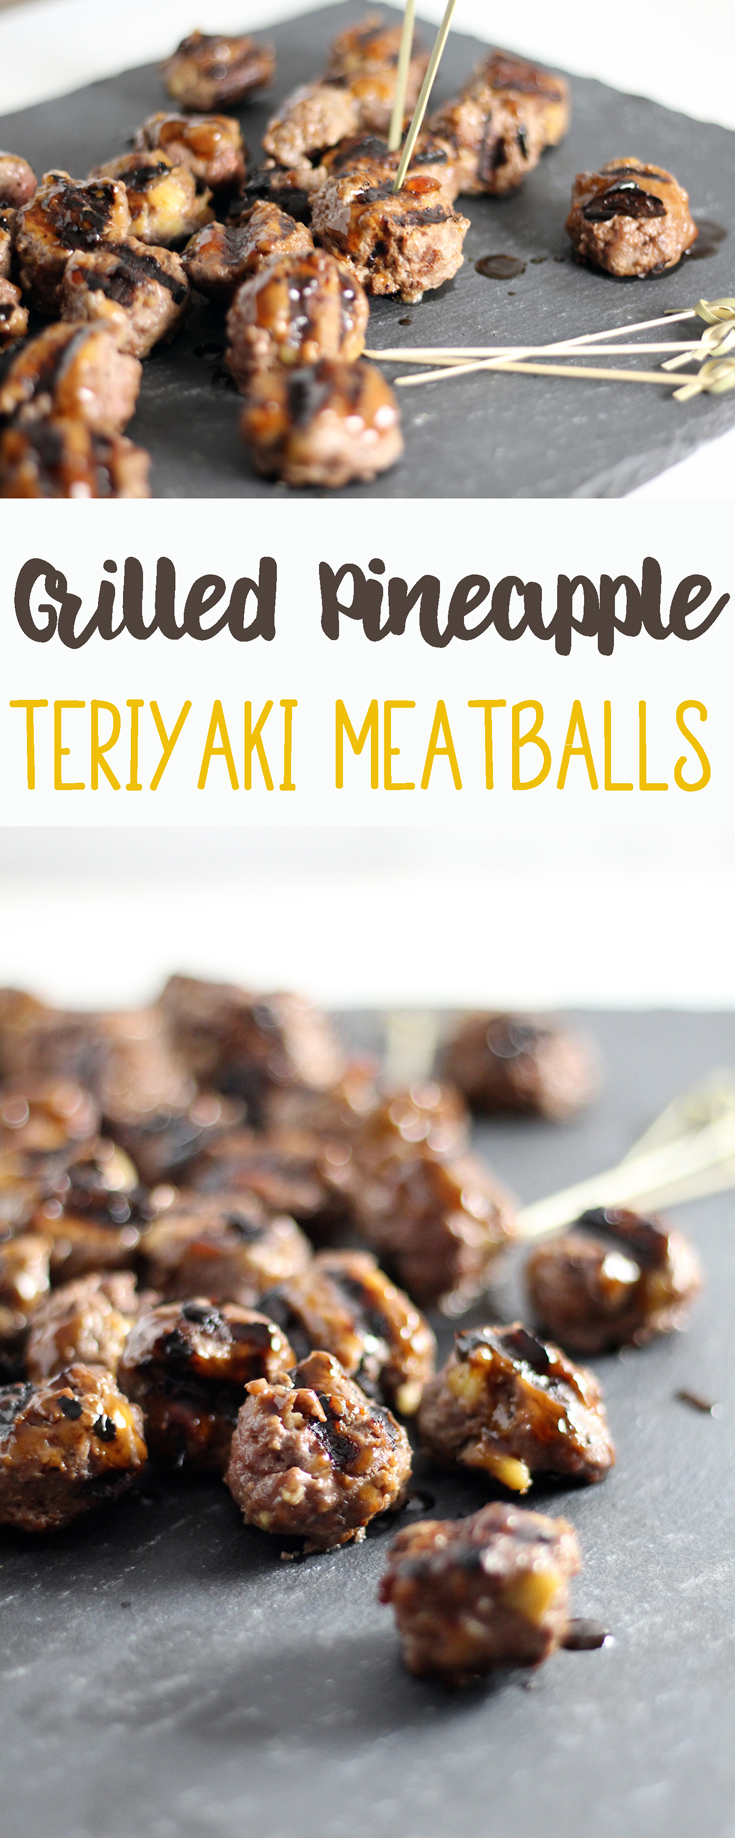 Grilled Pineapple Teriyaki Meatballs. This recipe is perfect for parties and cookouts.  Salty and tangy teriyaki POW with a little sweet pineapple mixed in.  #teriyakimeatballs #meatballrecipe